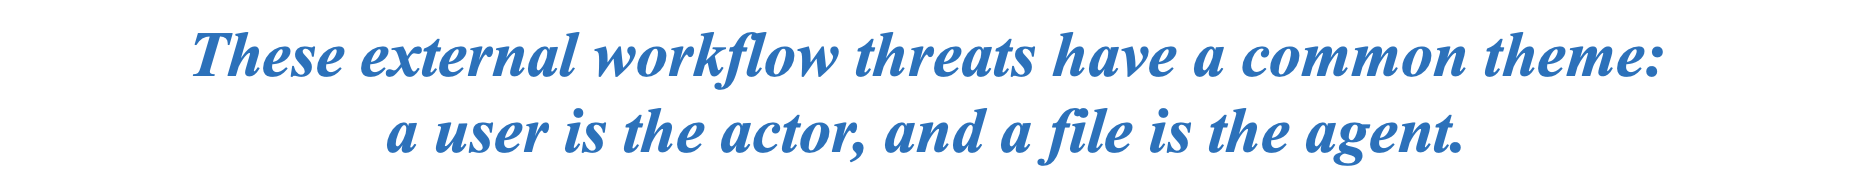 Secure Content Protection Best Practices Quote